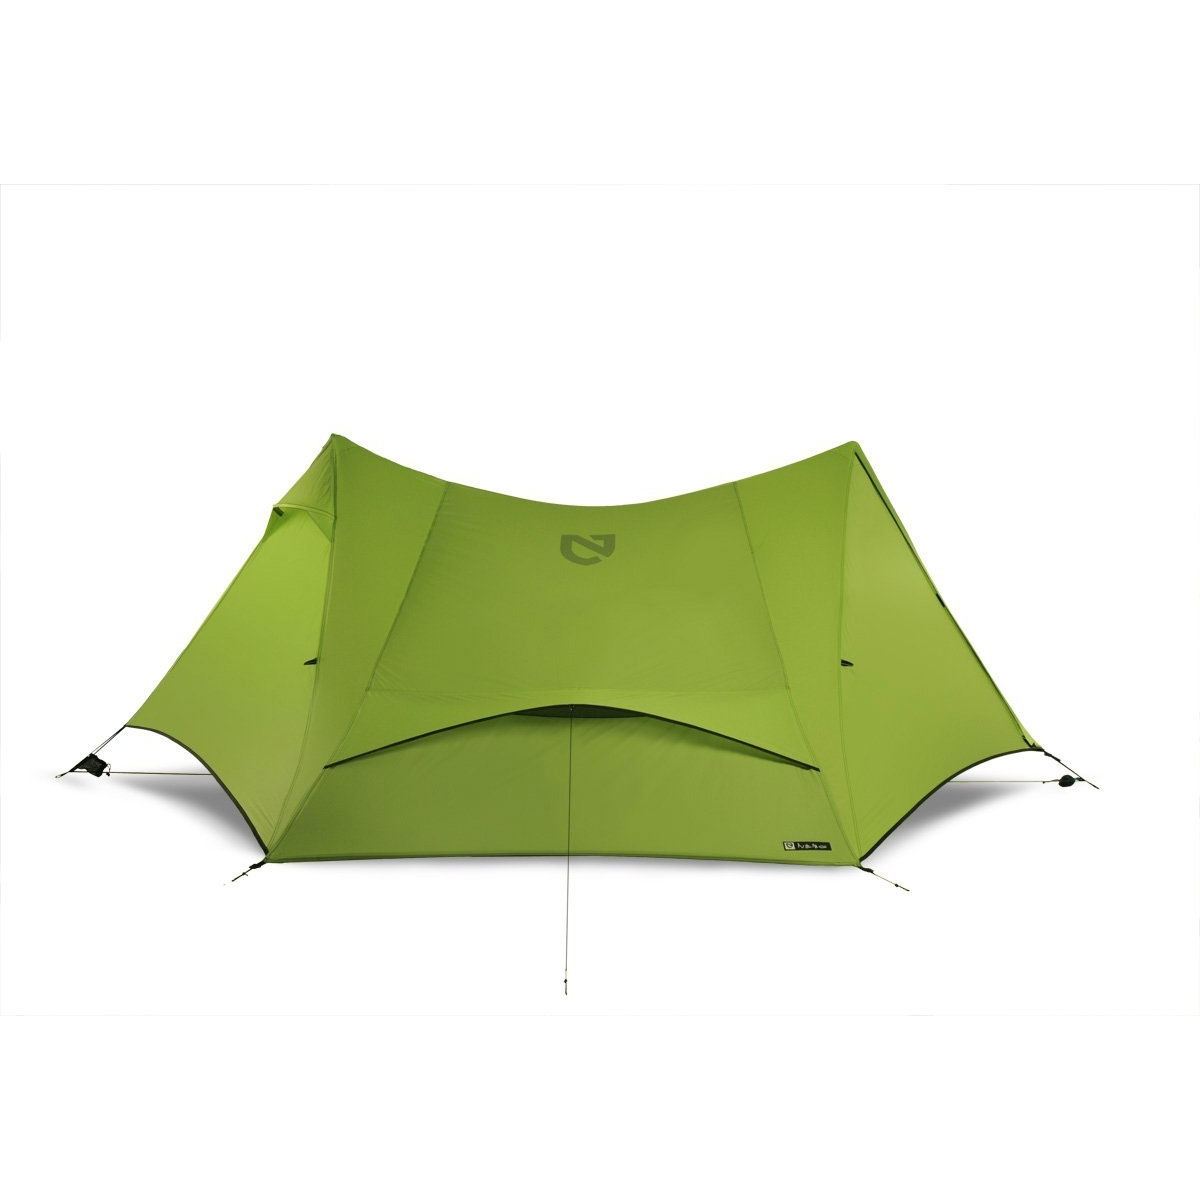 ... Image of Nemo Meta 2P Trekking Pole Tent - Green  sc 1 st  Uttings & Nemo Meta 2P Trekking Pole Tent - Green | Uttings.co.uk